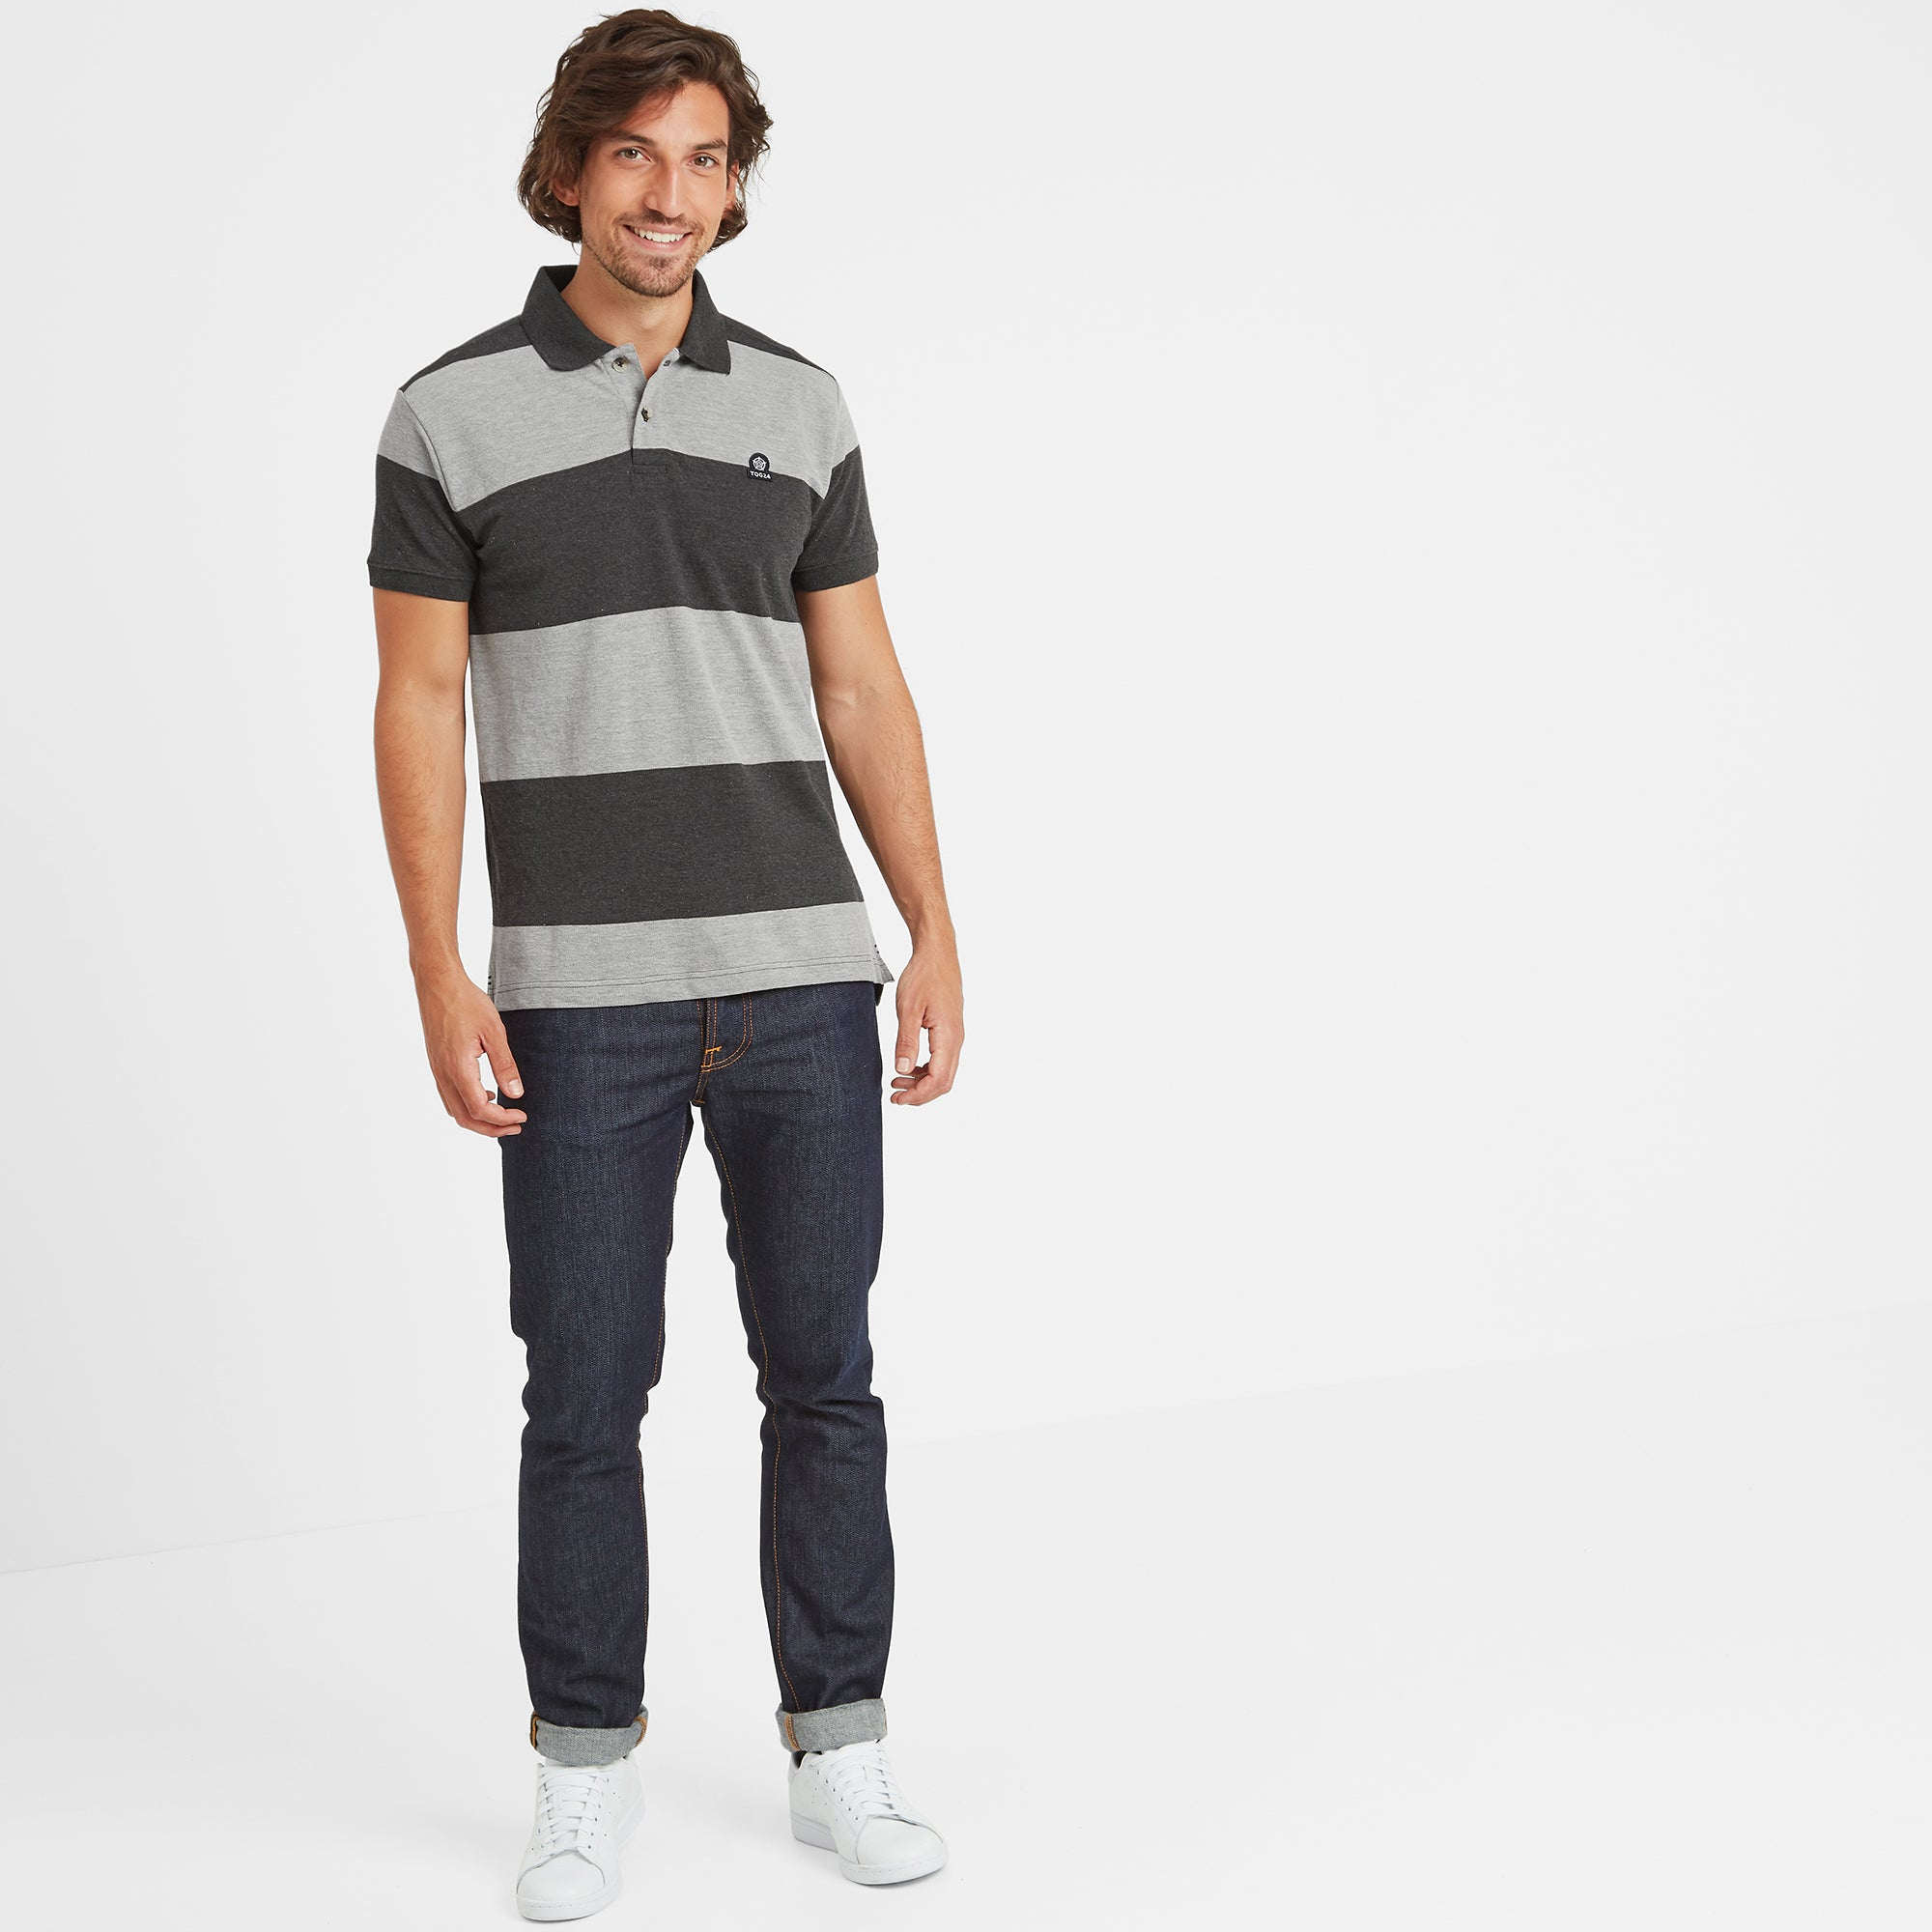 Seacroft Mens Pique Stripe Polo - Grey Marl Stripe